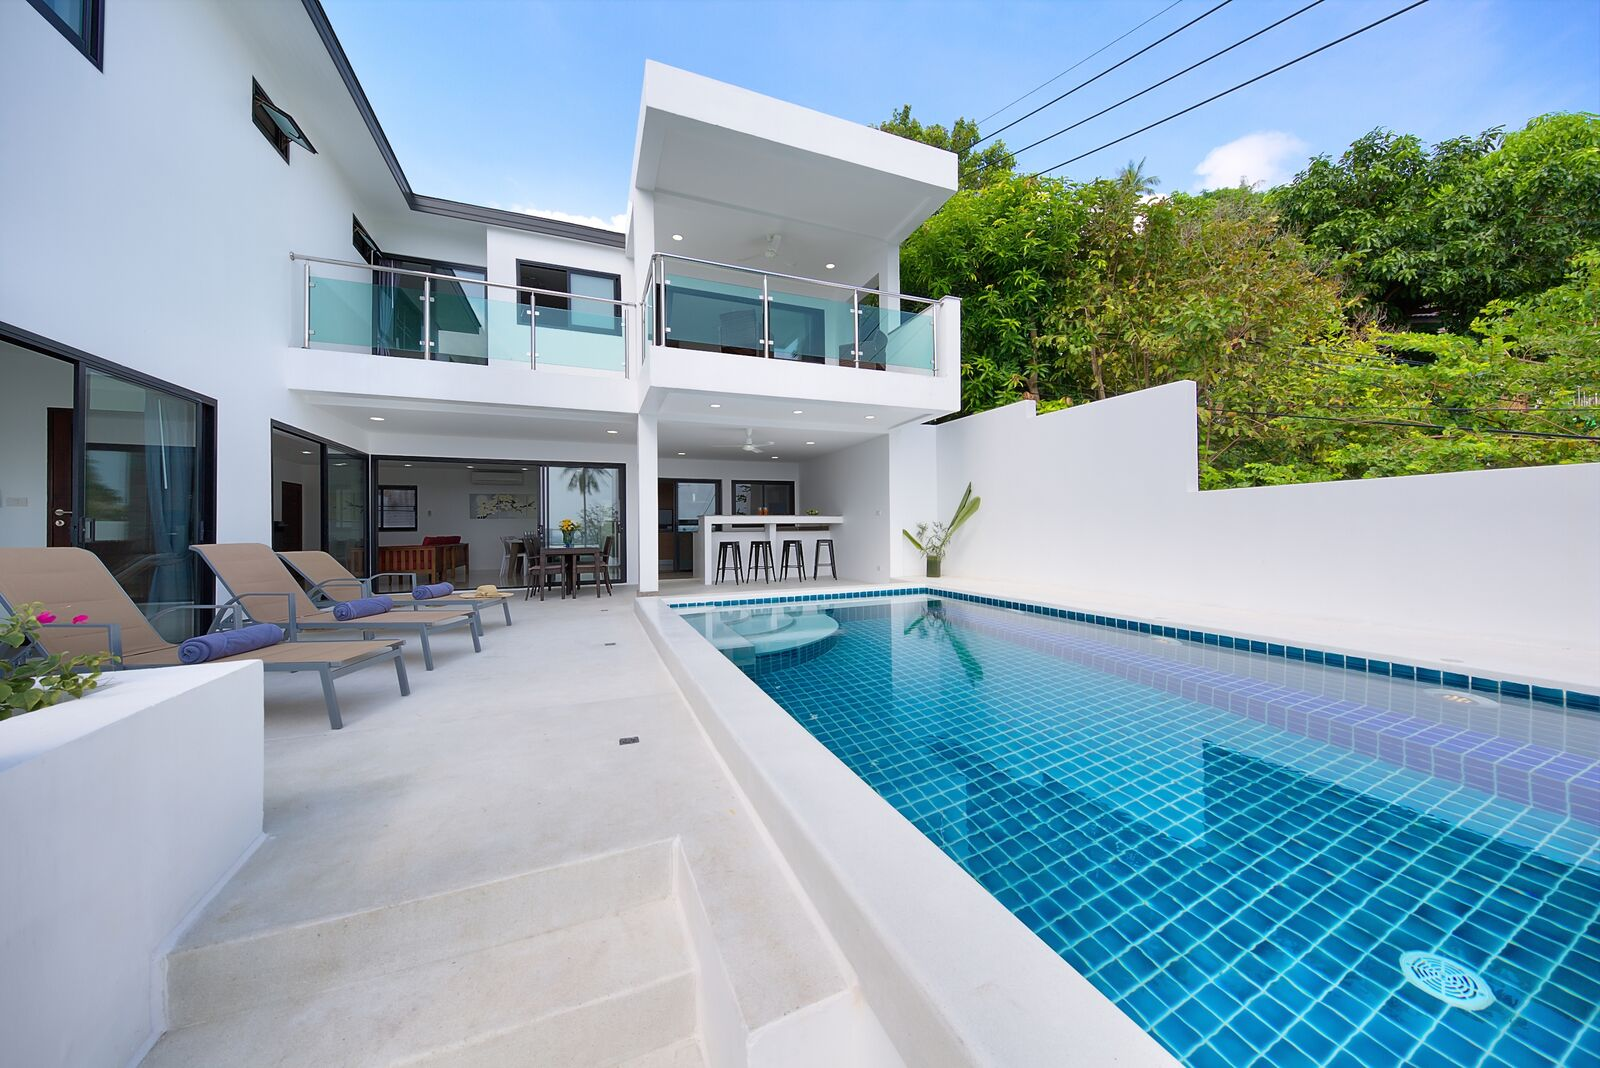 4 Bedroom Sea View Villa with Private Pool at Lamai Koh Samui